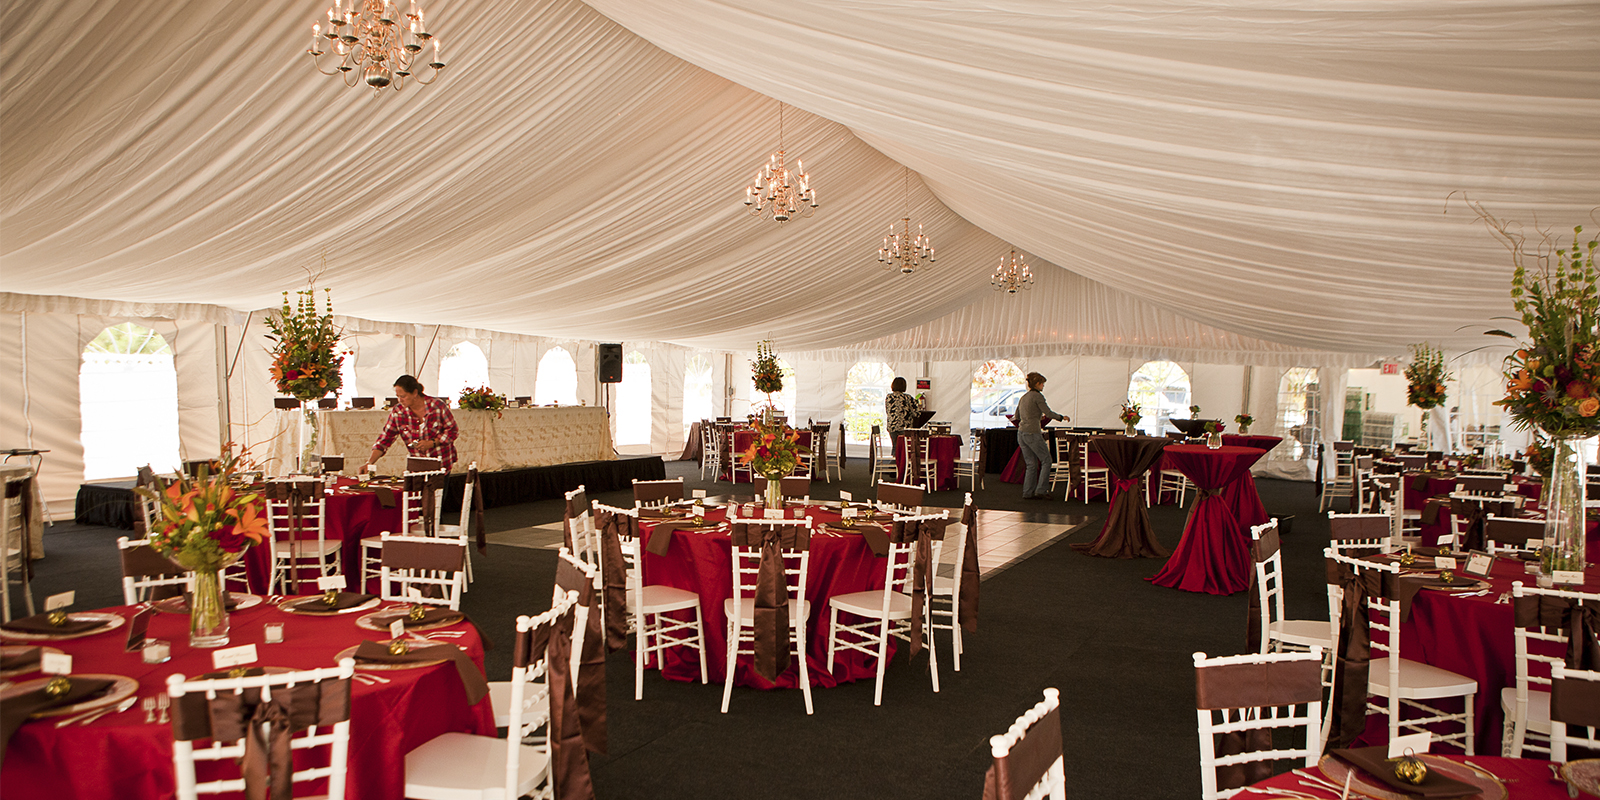 Wedding Rentals in Raleigh